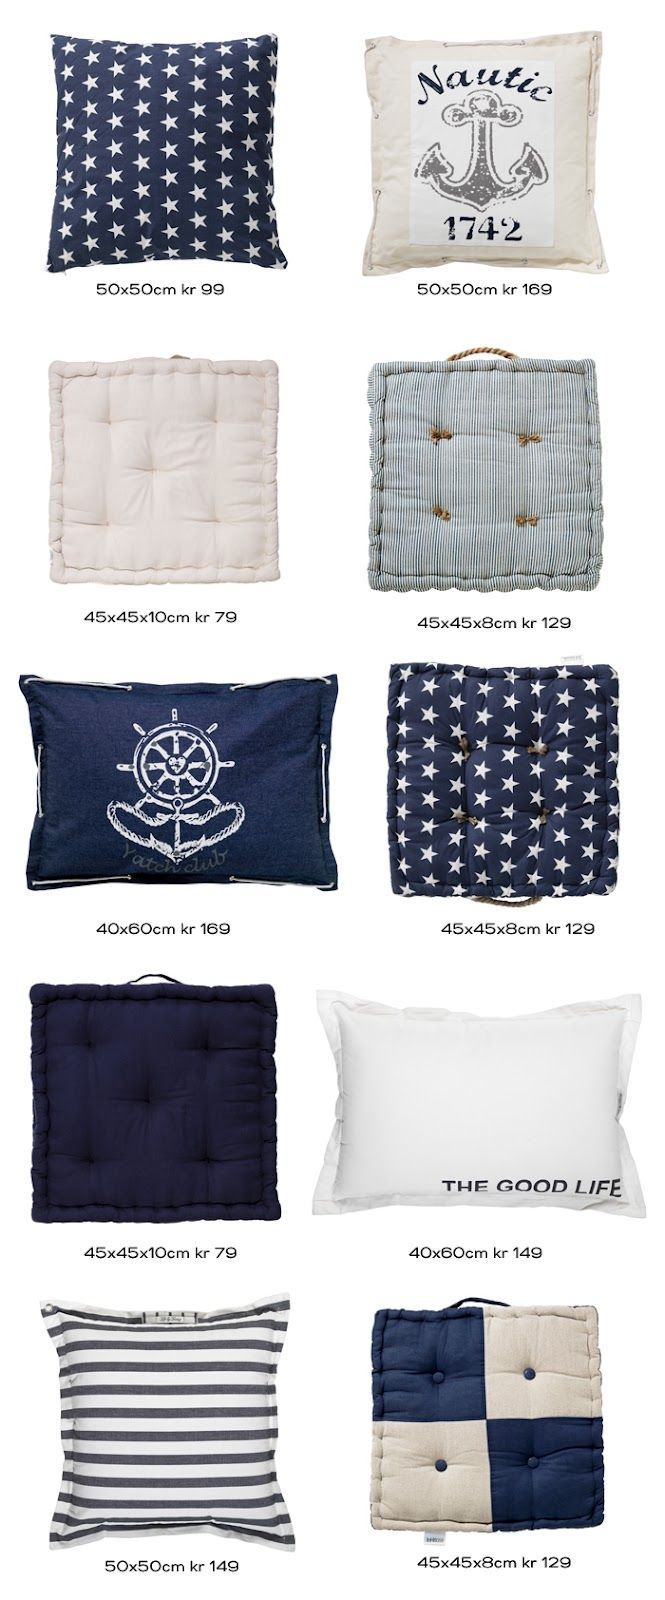 Maritime style - cushions